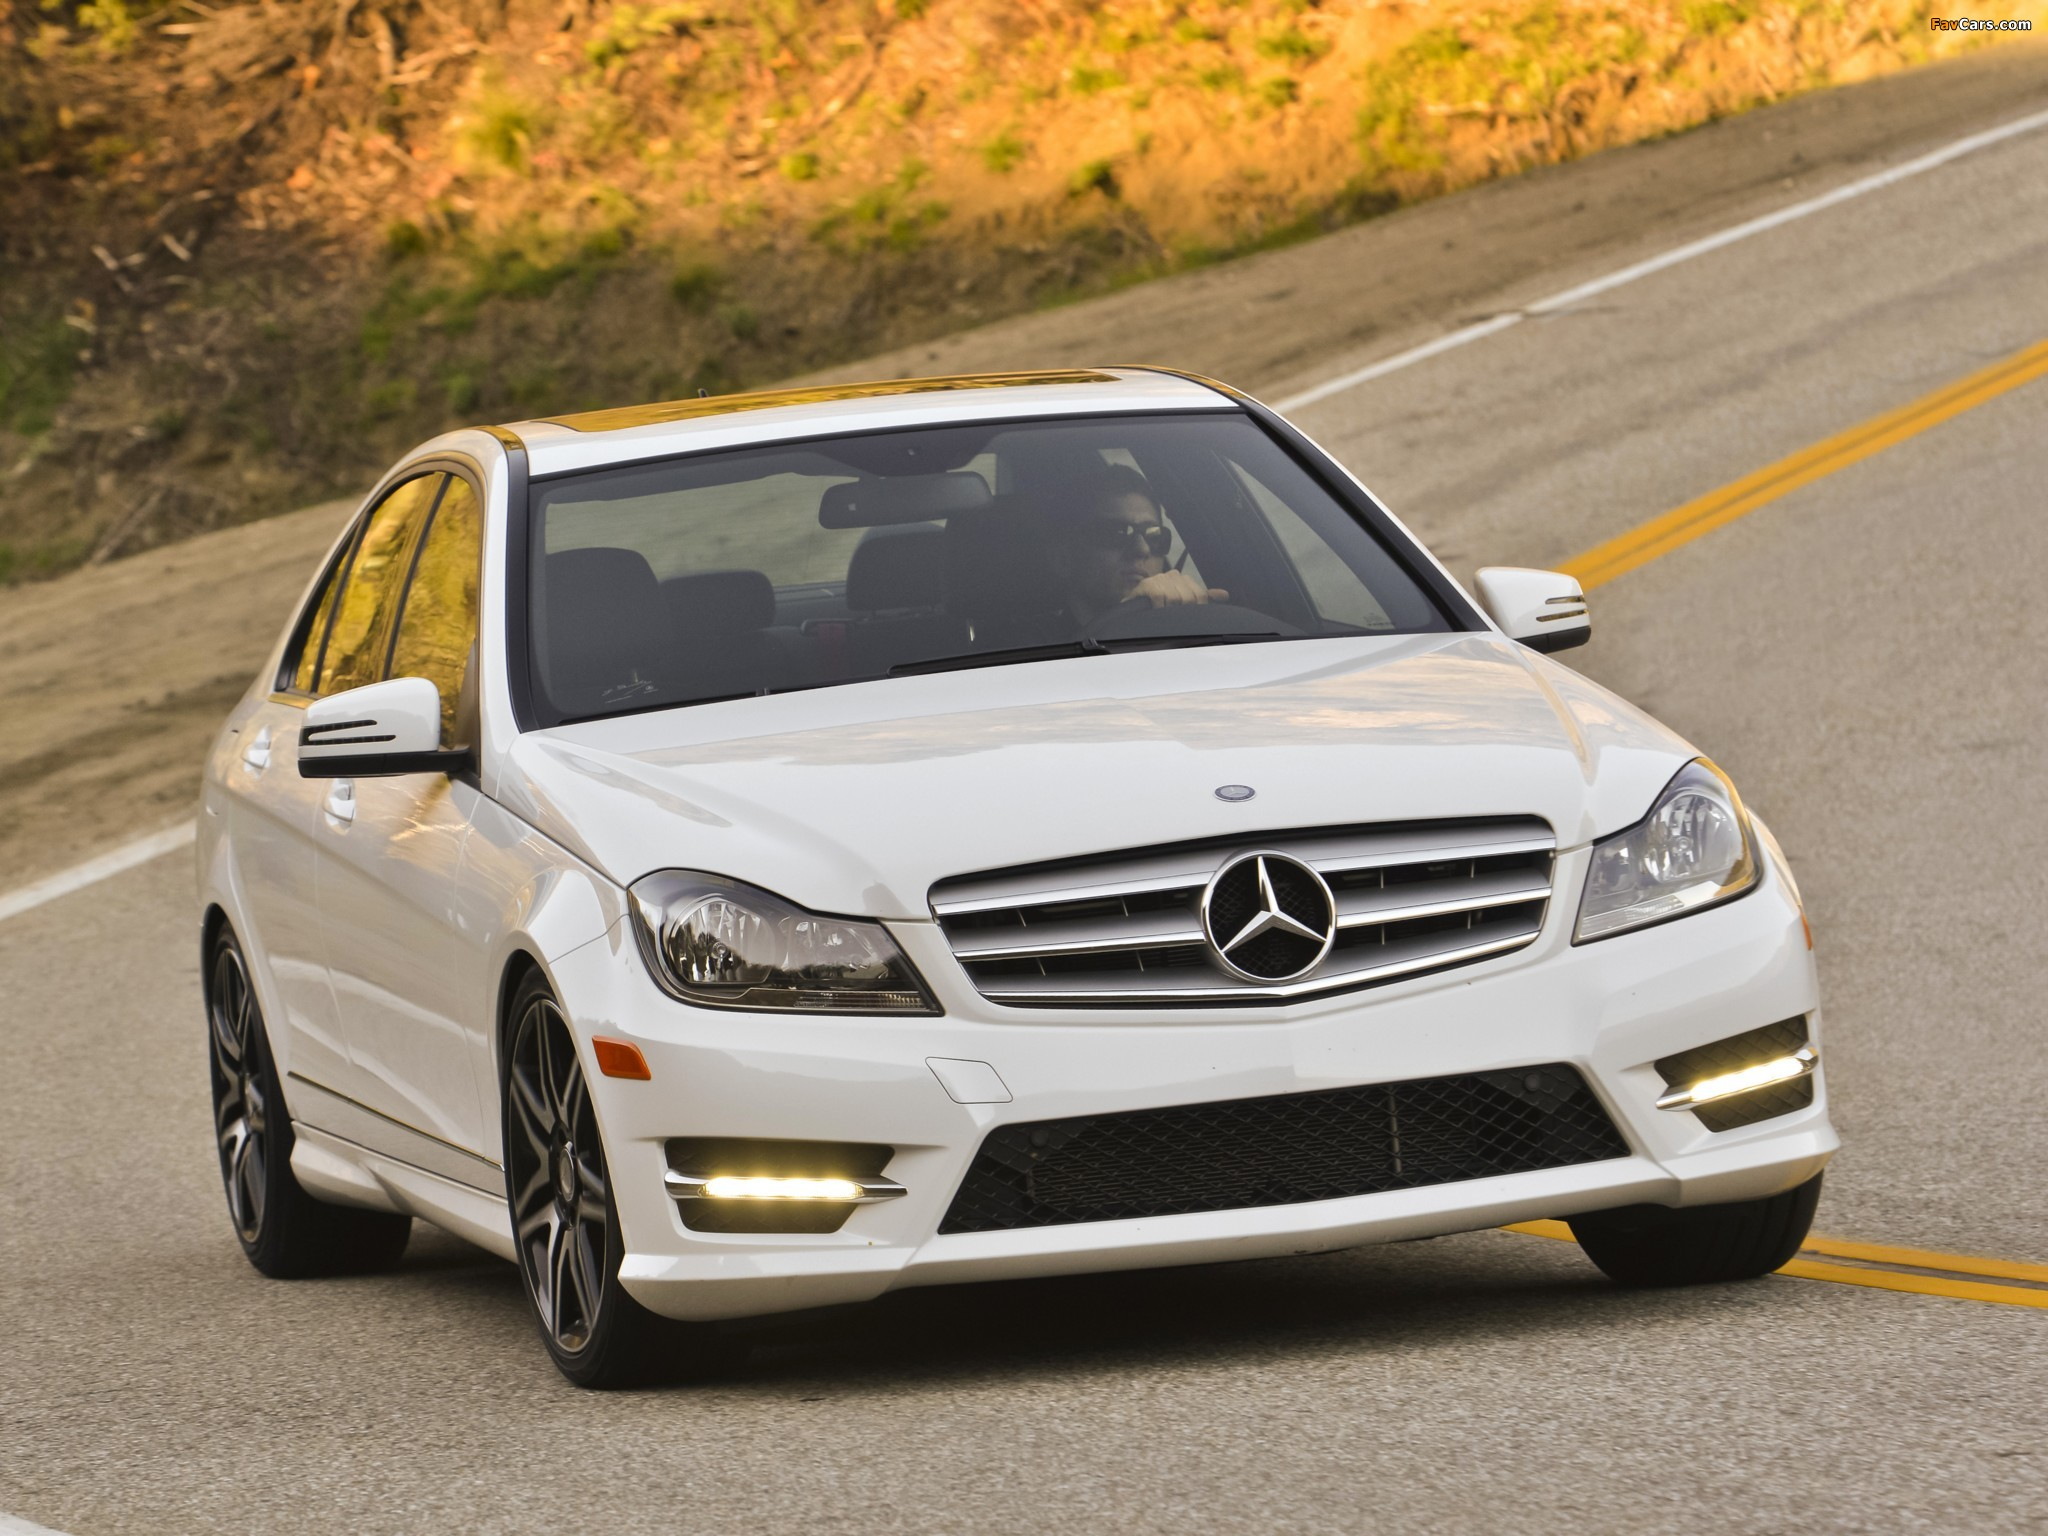 Mercedes-Benz C 300 4MATIC AMG Sports Package US-spec (W204) 2011 wallpapers (2048 x 1536)